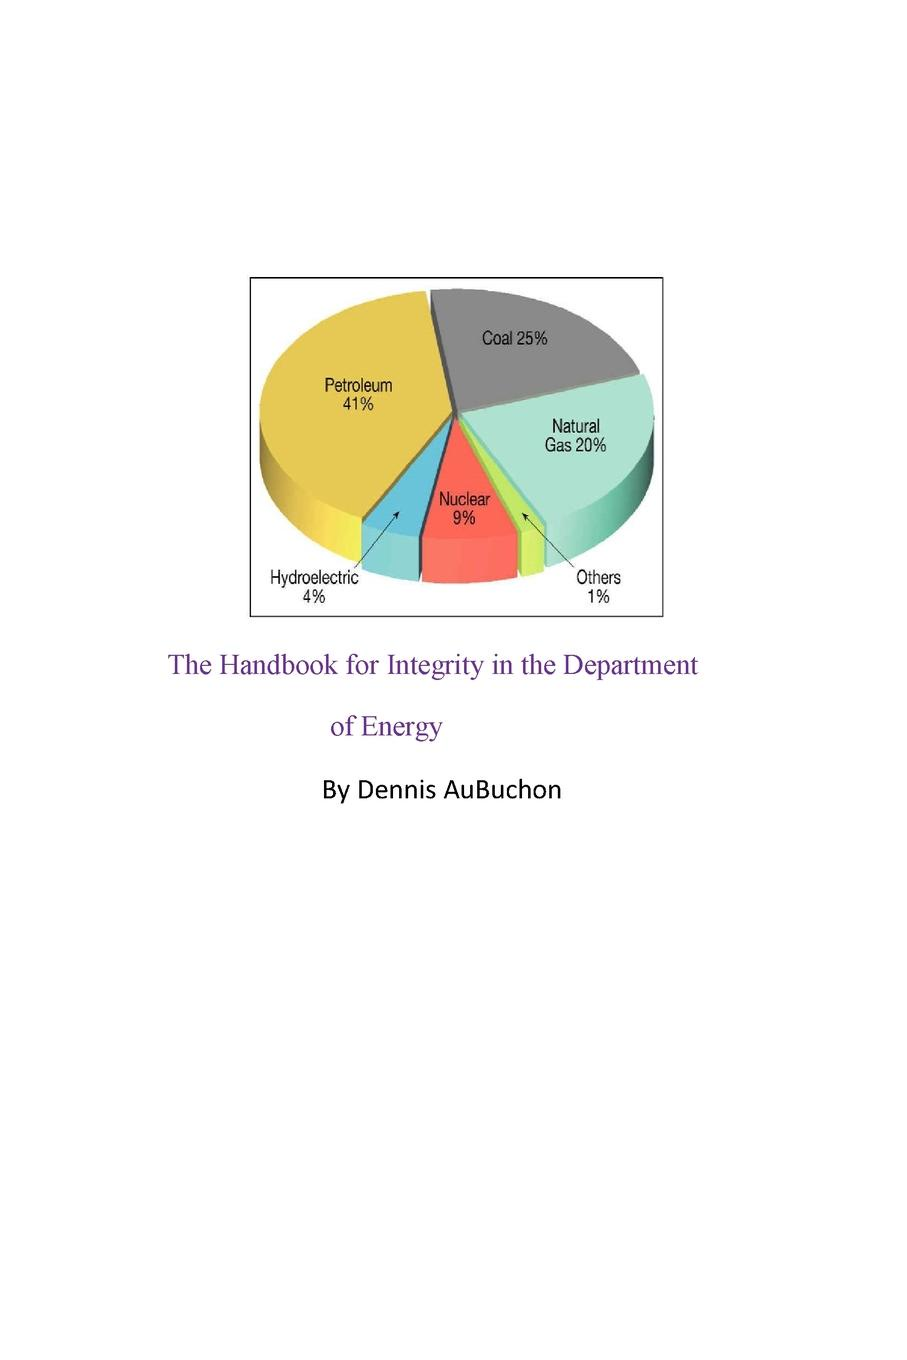 AuBuchon The Handbook for Integrity in the Department of Energy engrained engrained deep rooted